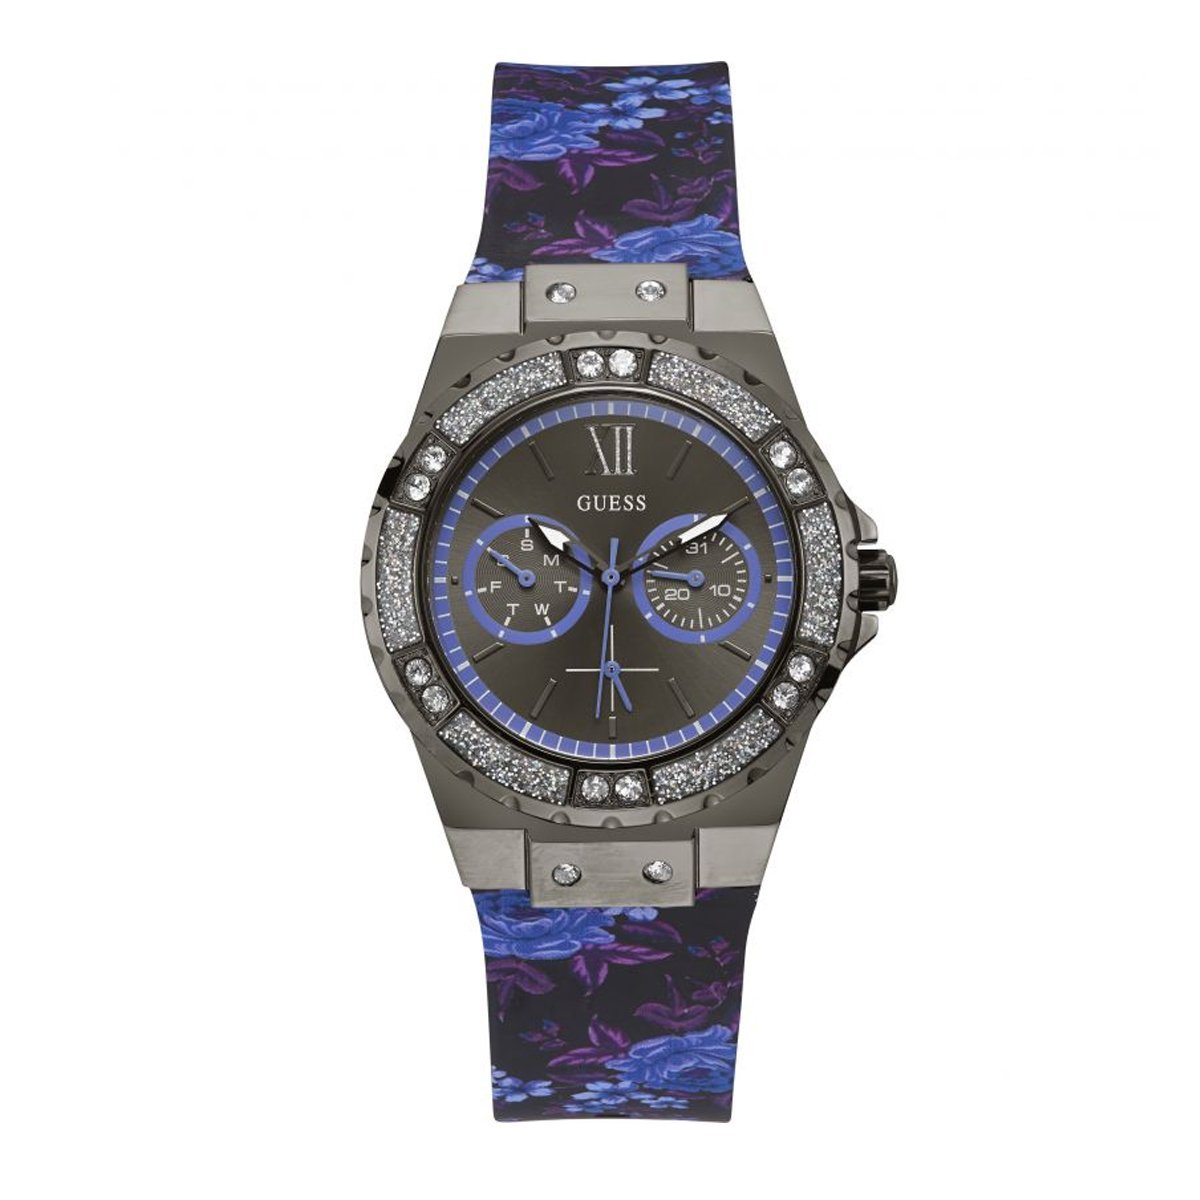 Guess Limelight Purple - Watches & Crystals